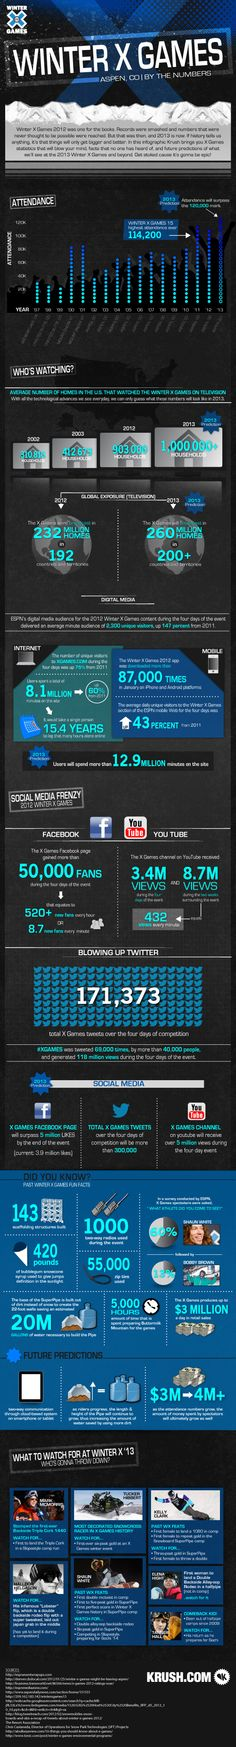 Winter X Games infographic